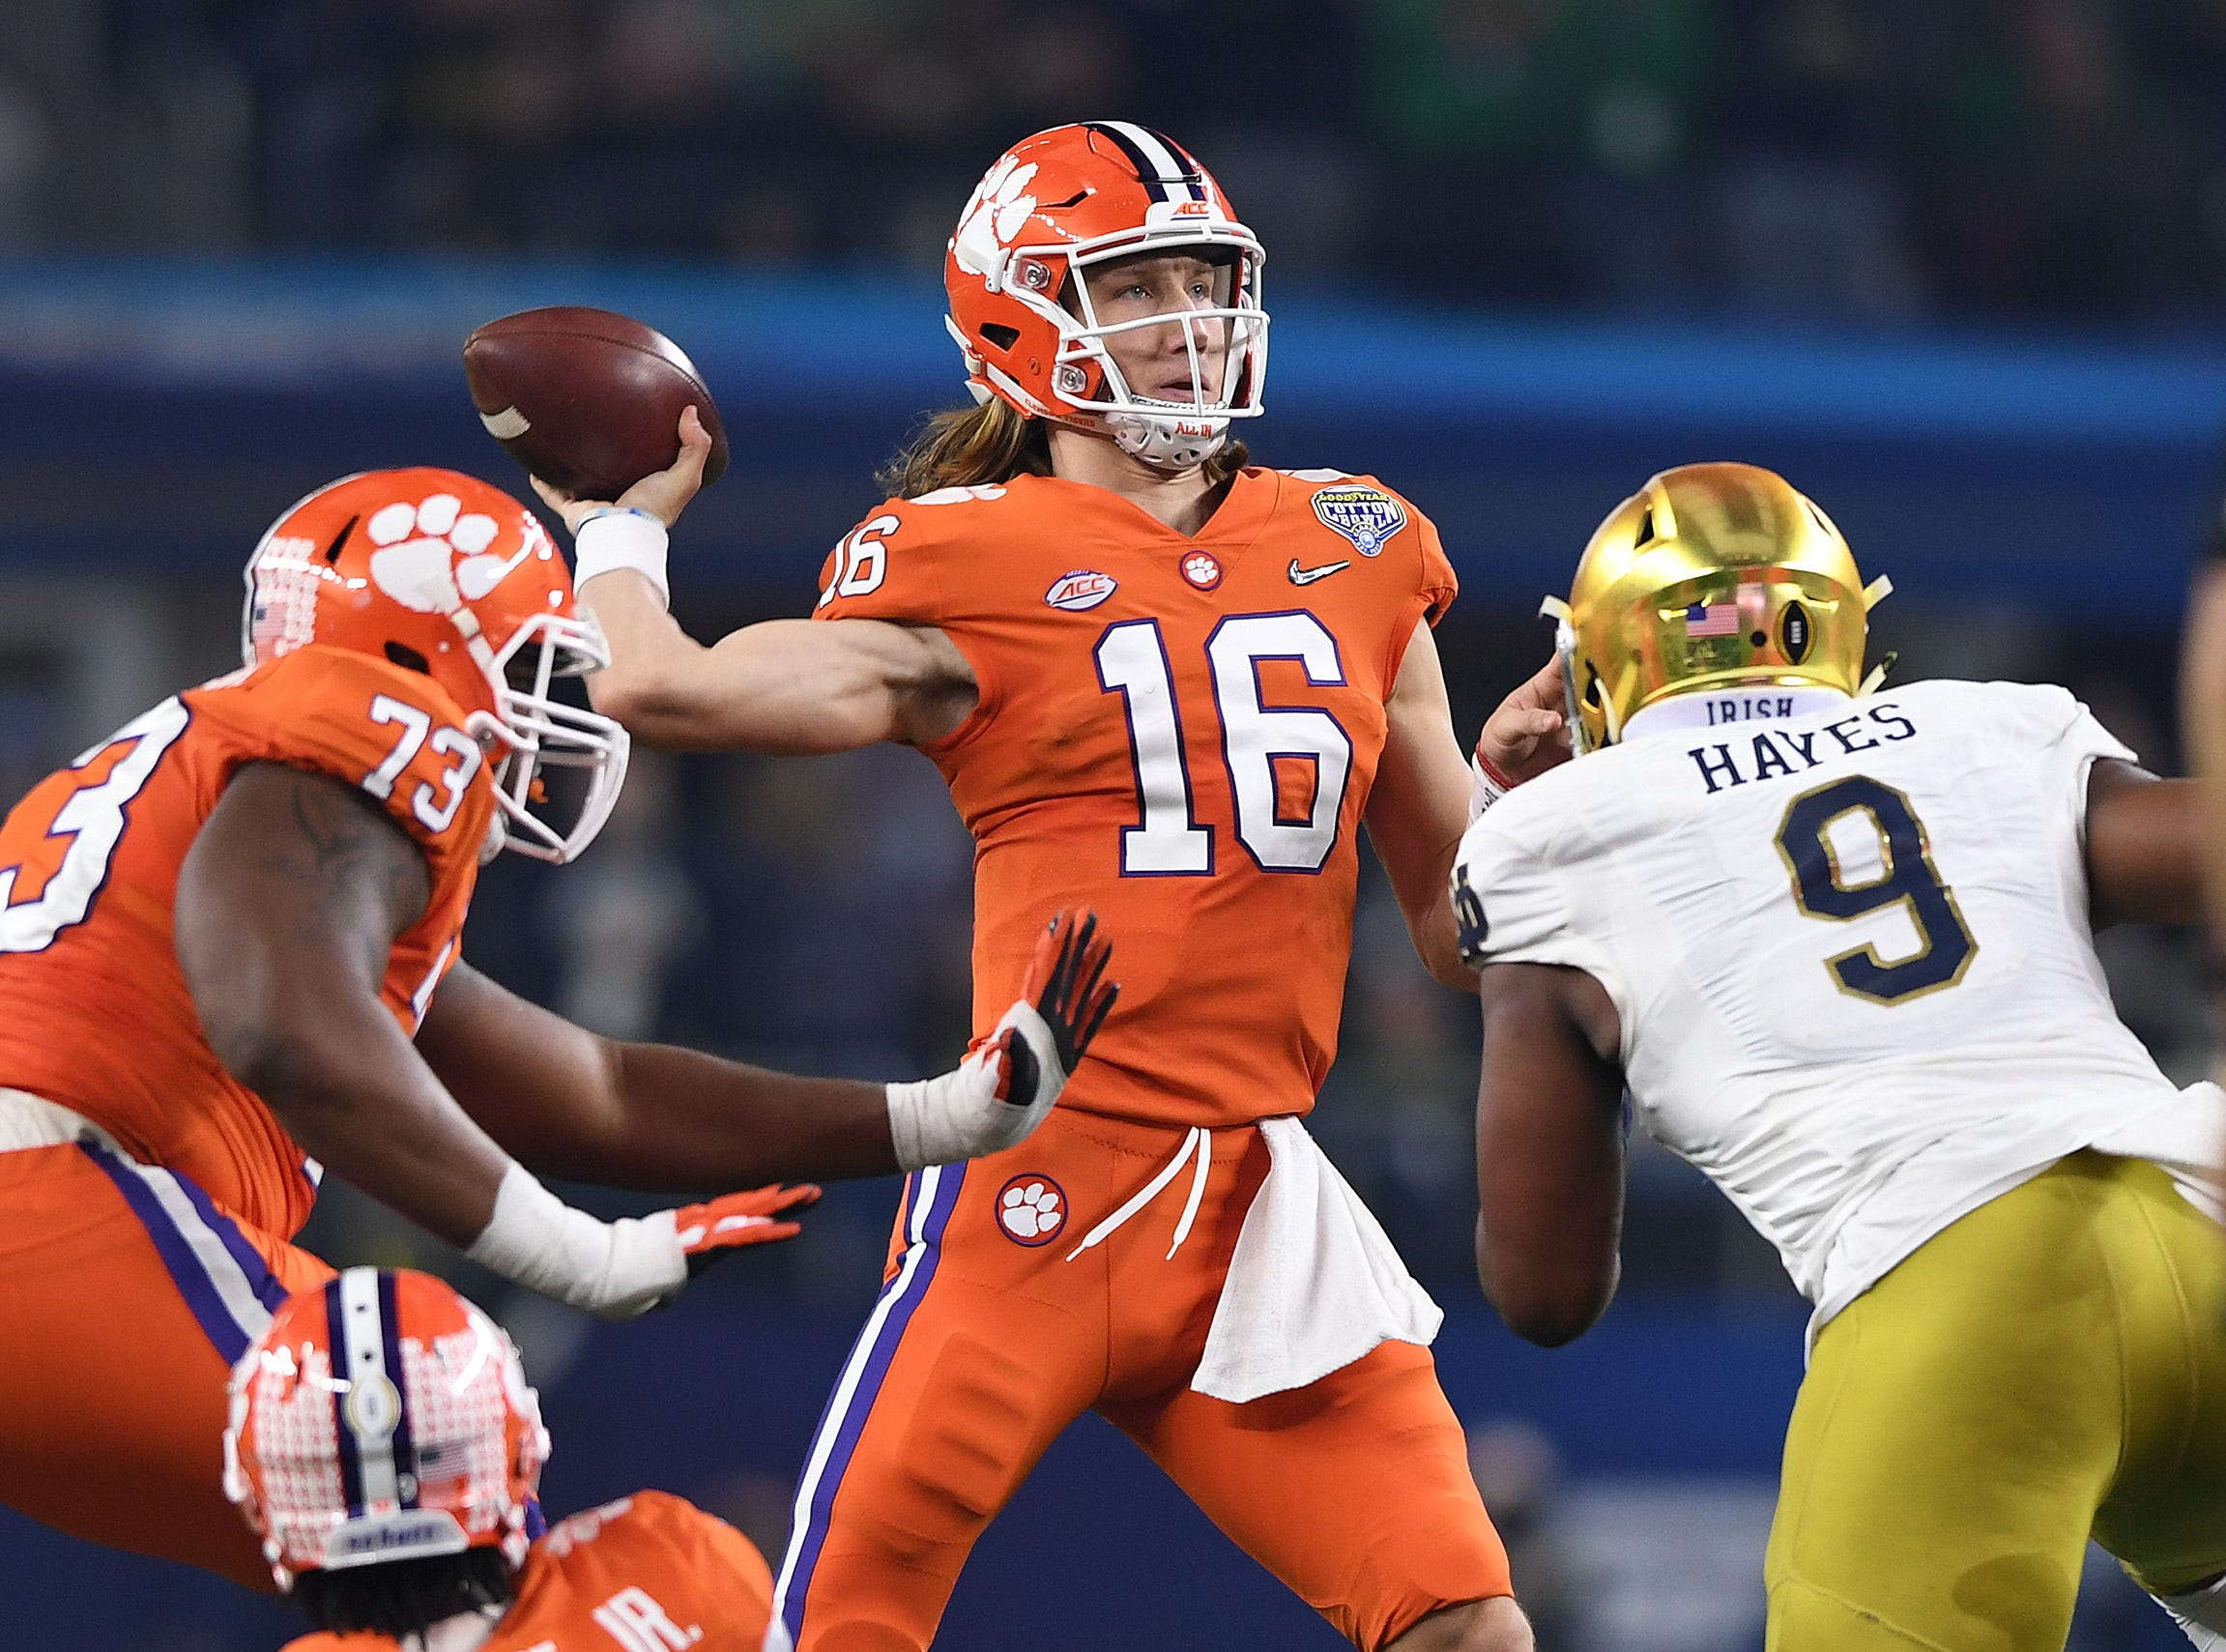 Clemson quarterback Trevor Lawrence (16) passes against Notre Dame during the 2nd quarter of the Goodyear Cotton Bowl at AT&T stadium in Arlington, TX Saturday, December 29, 2018.